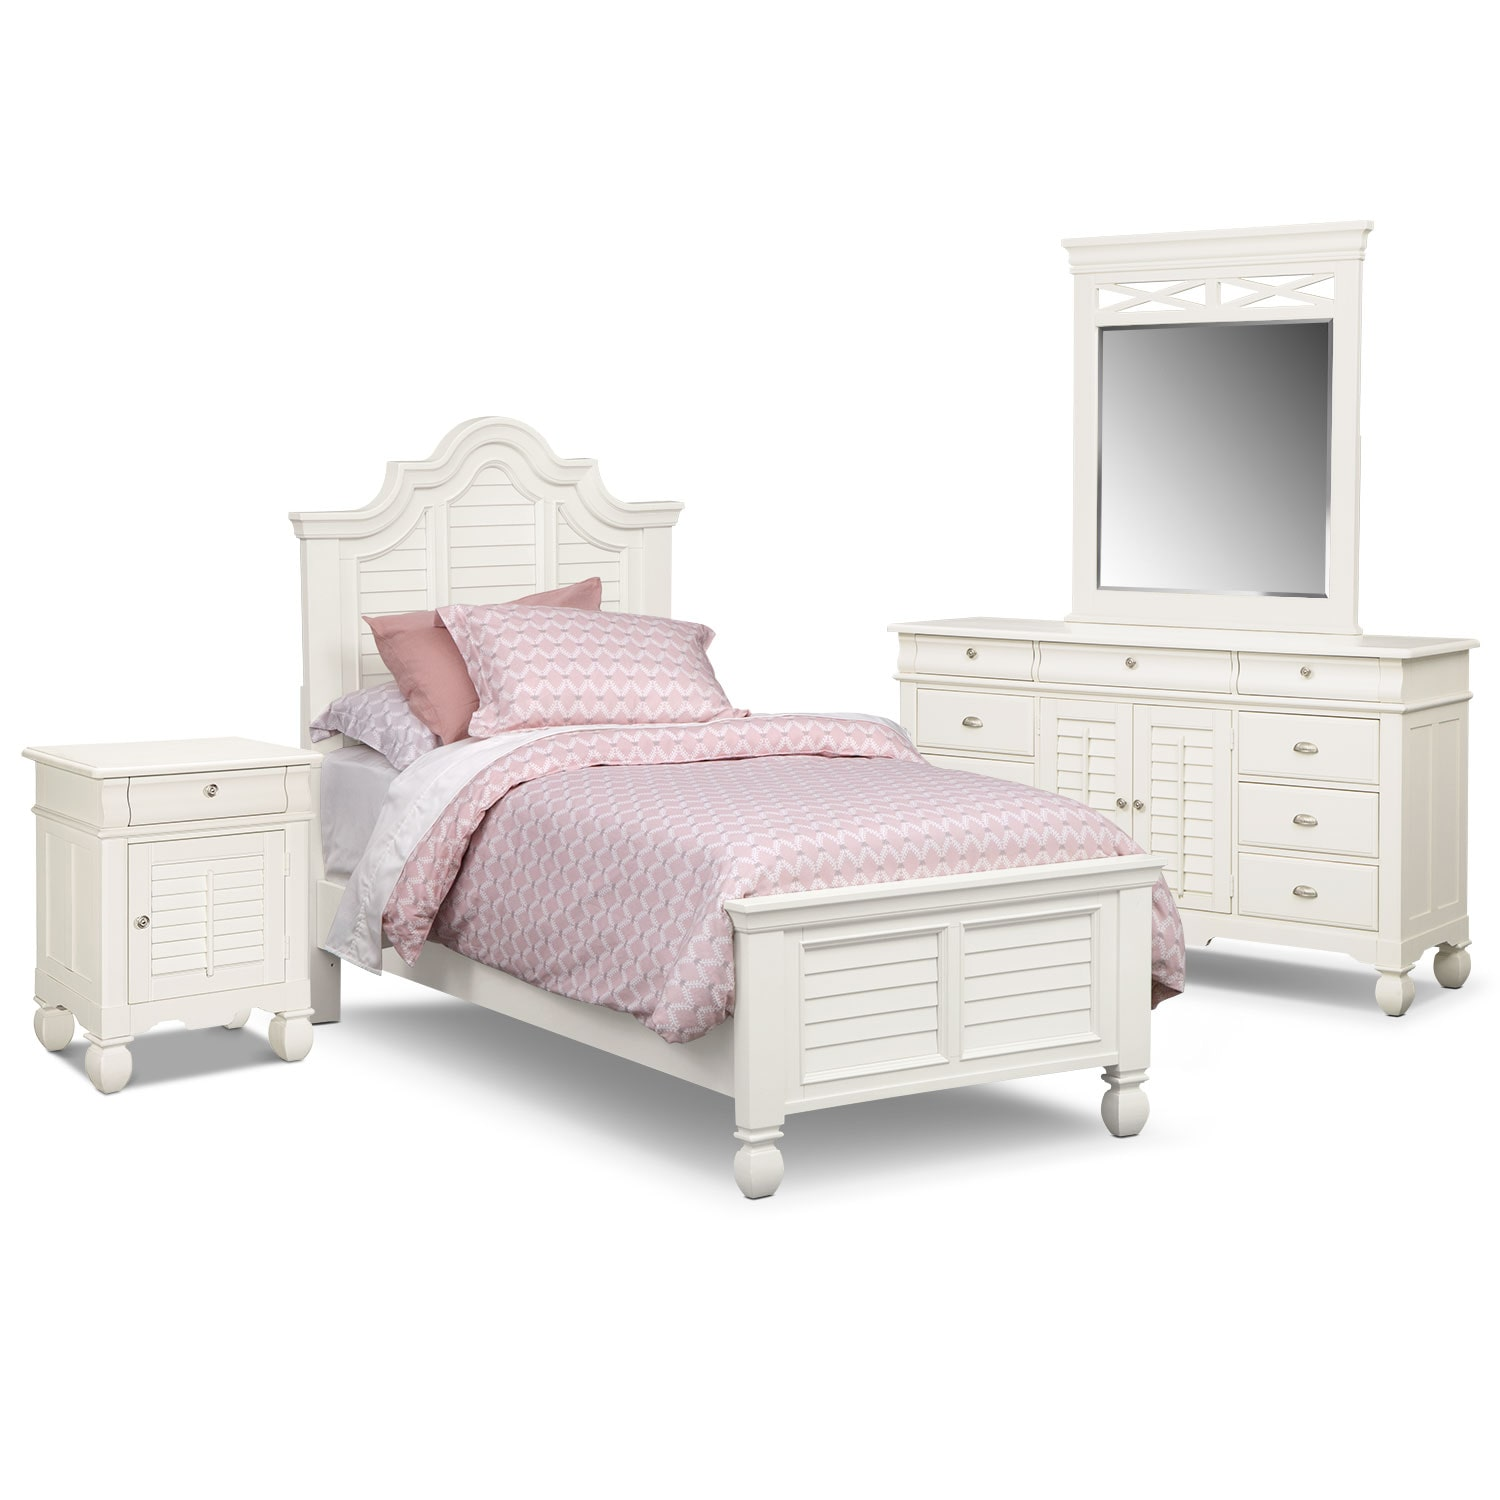 Kids Furniture - Plantation Cove White Panel II 6 Pc. Twin Bedroom